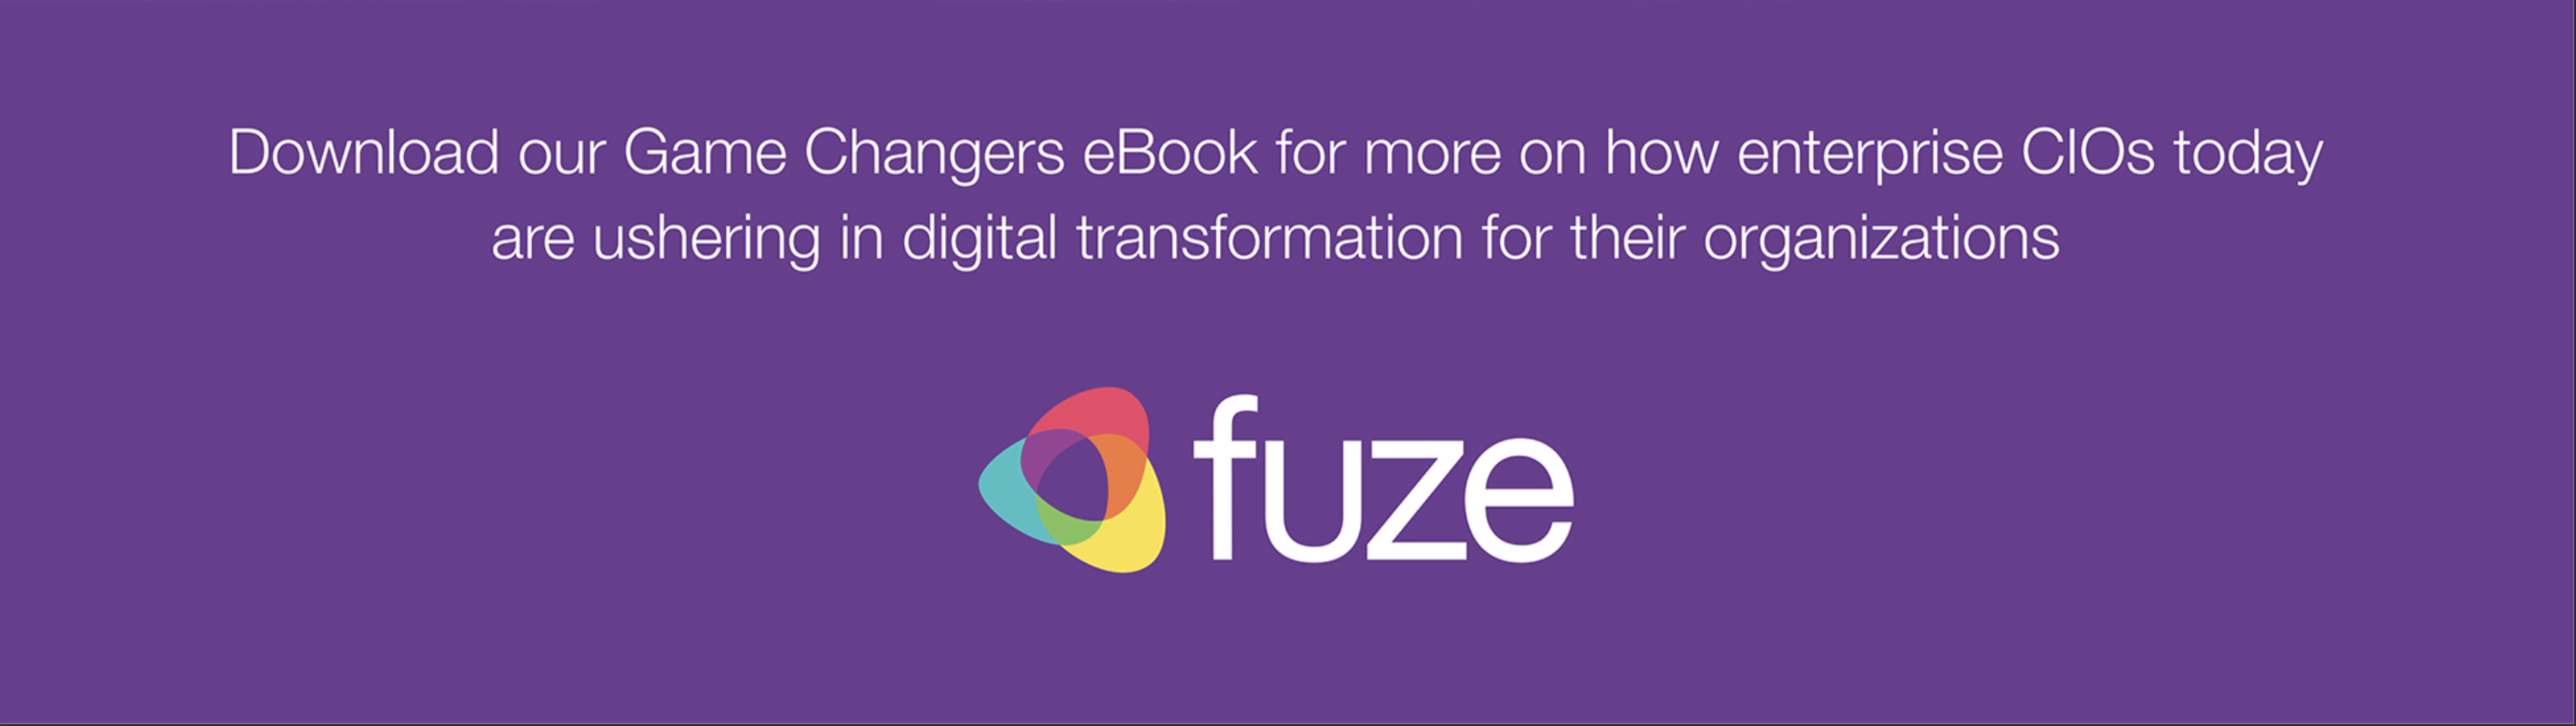 Download our Game Changers eBook for more on how enterprise CIOs today are ushering in digital transformation fot their organizations